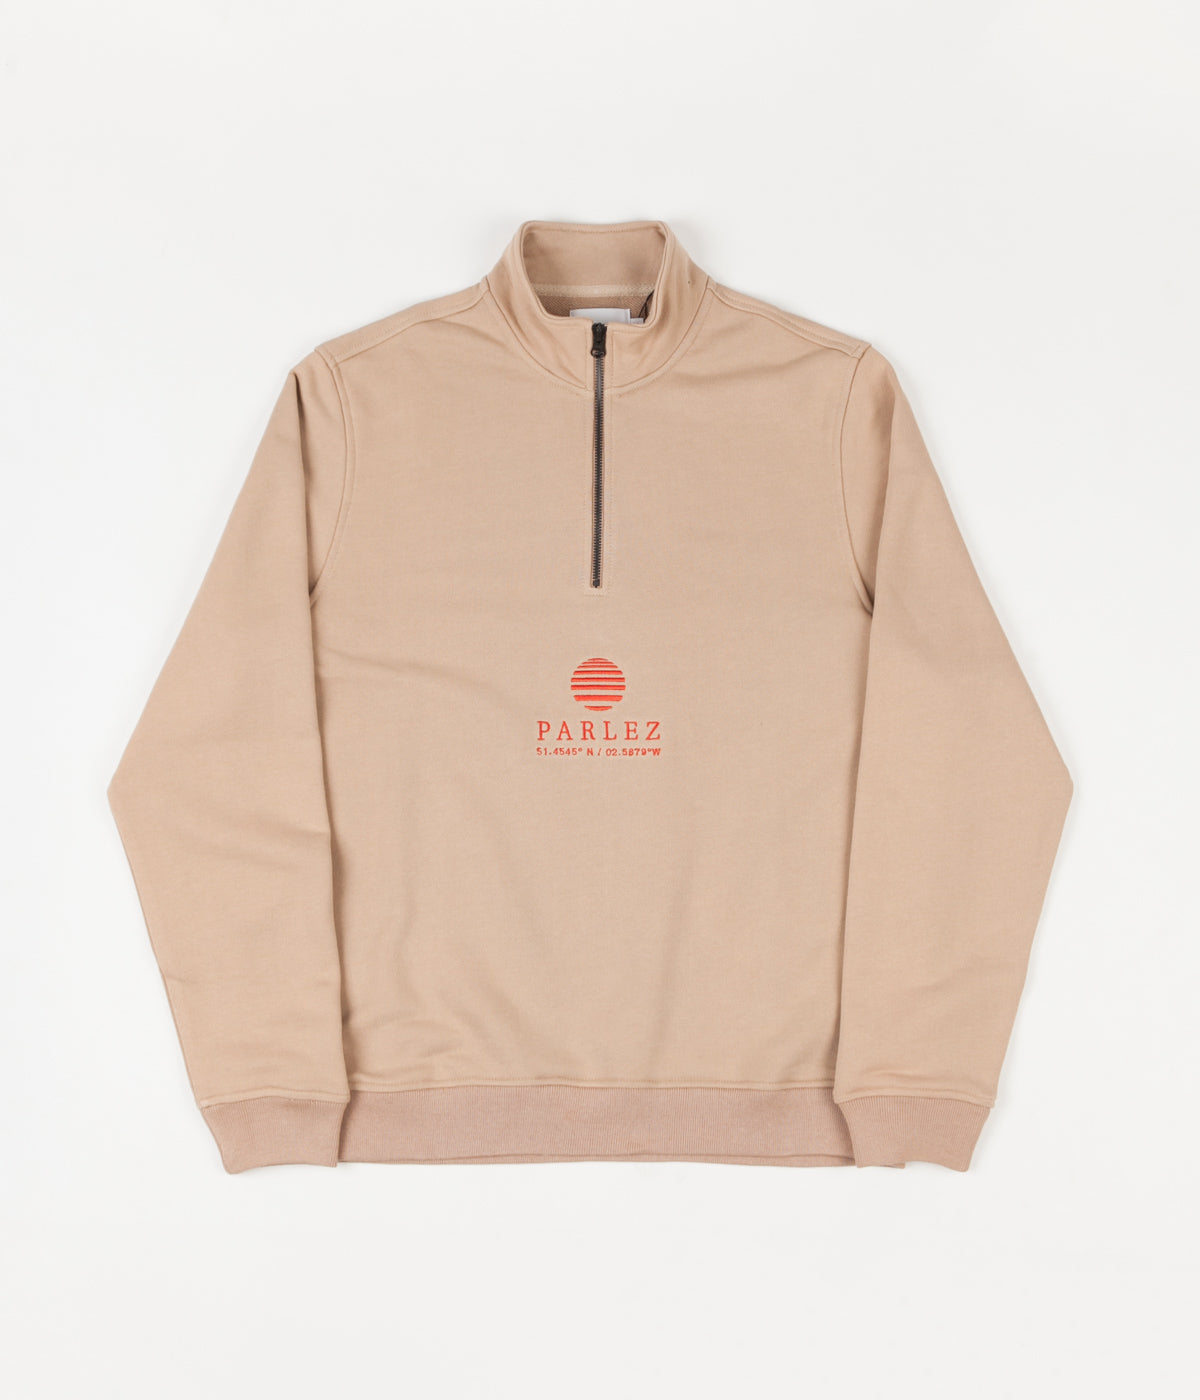 Parlez Purcel 1/4 Zip Sweatshirt - Sand